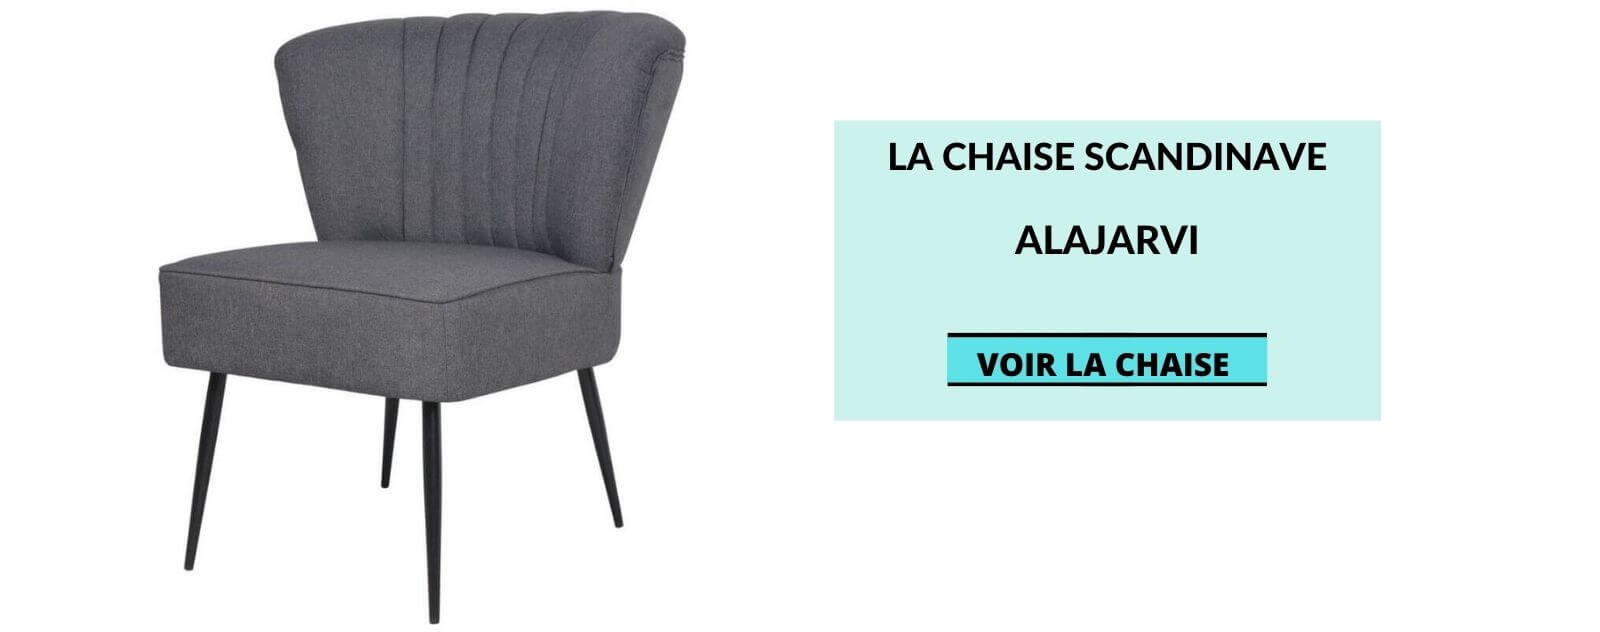 chaise-scandinave-confortable